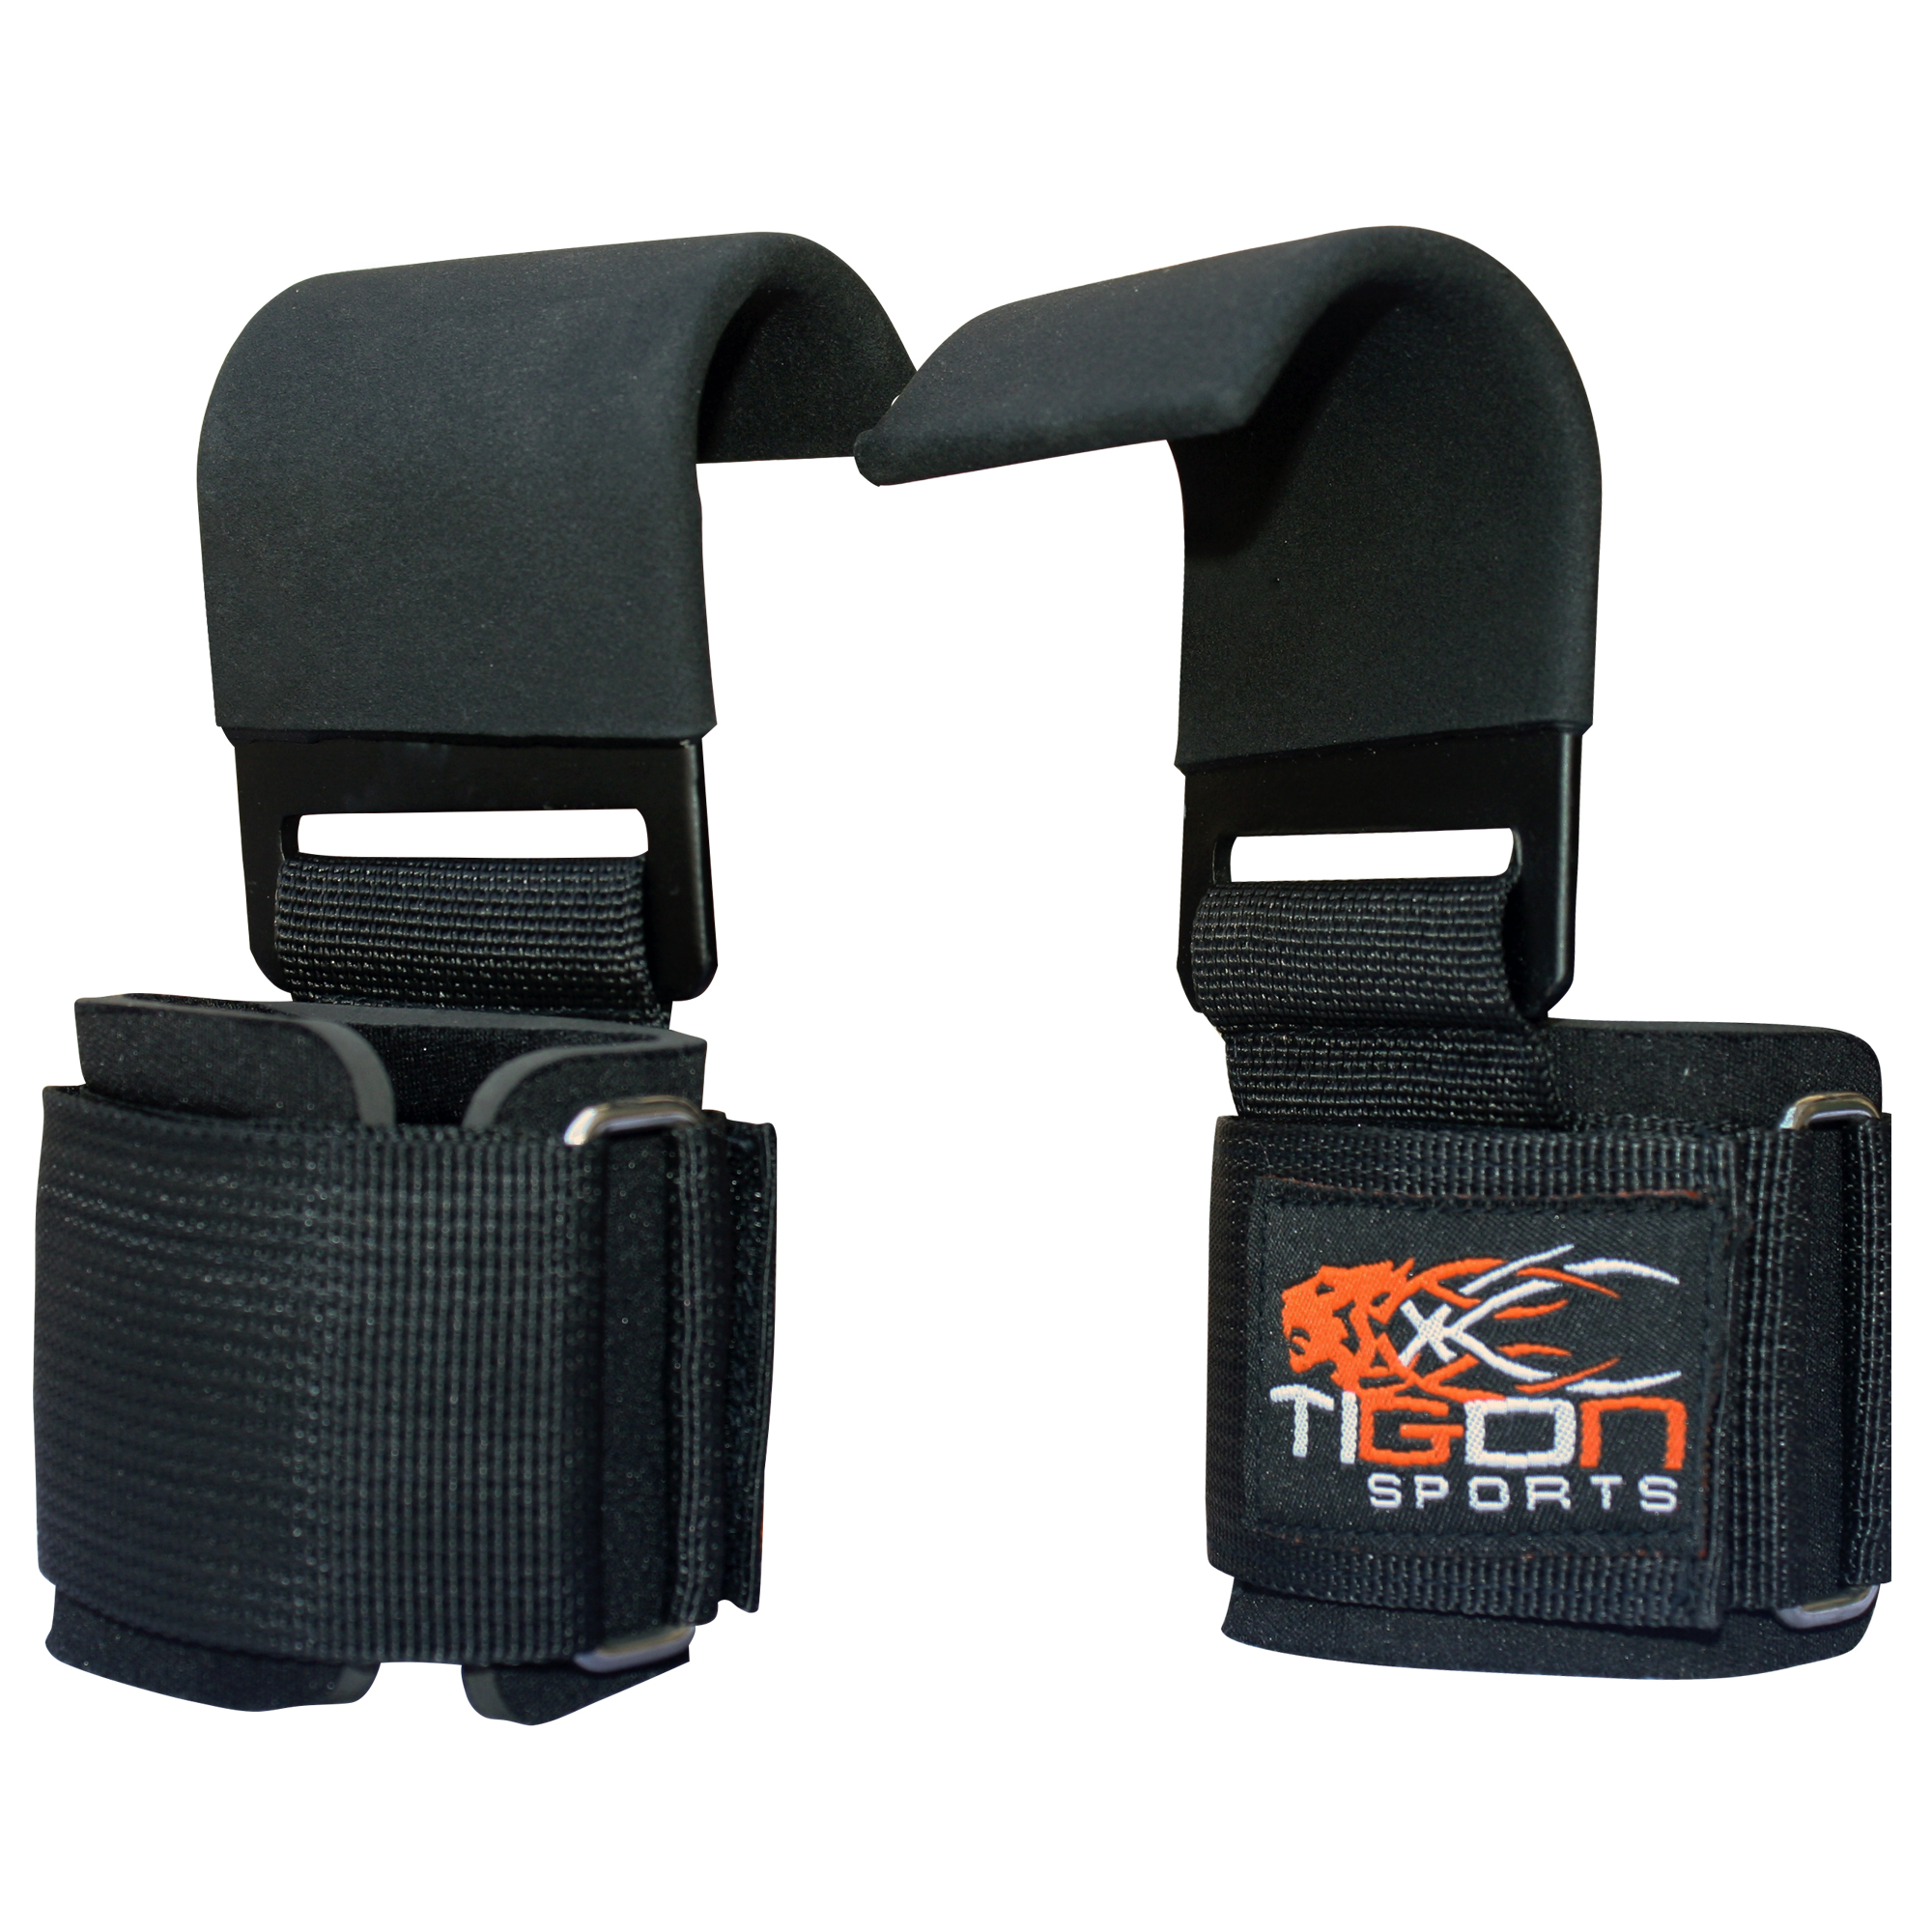 1 Pair Weight Lifting Hand Bar Grips Straps Wrist Support: Power Weight Lifting Training Gym Straps Hook Bar Wrist